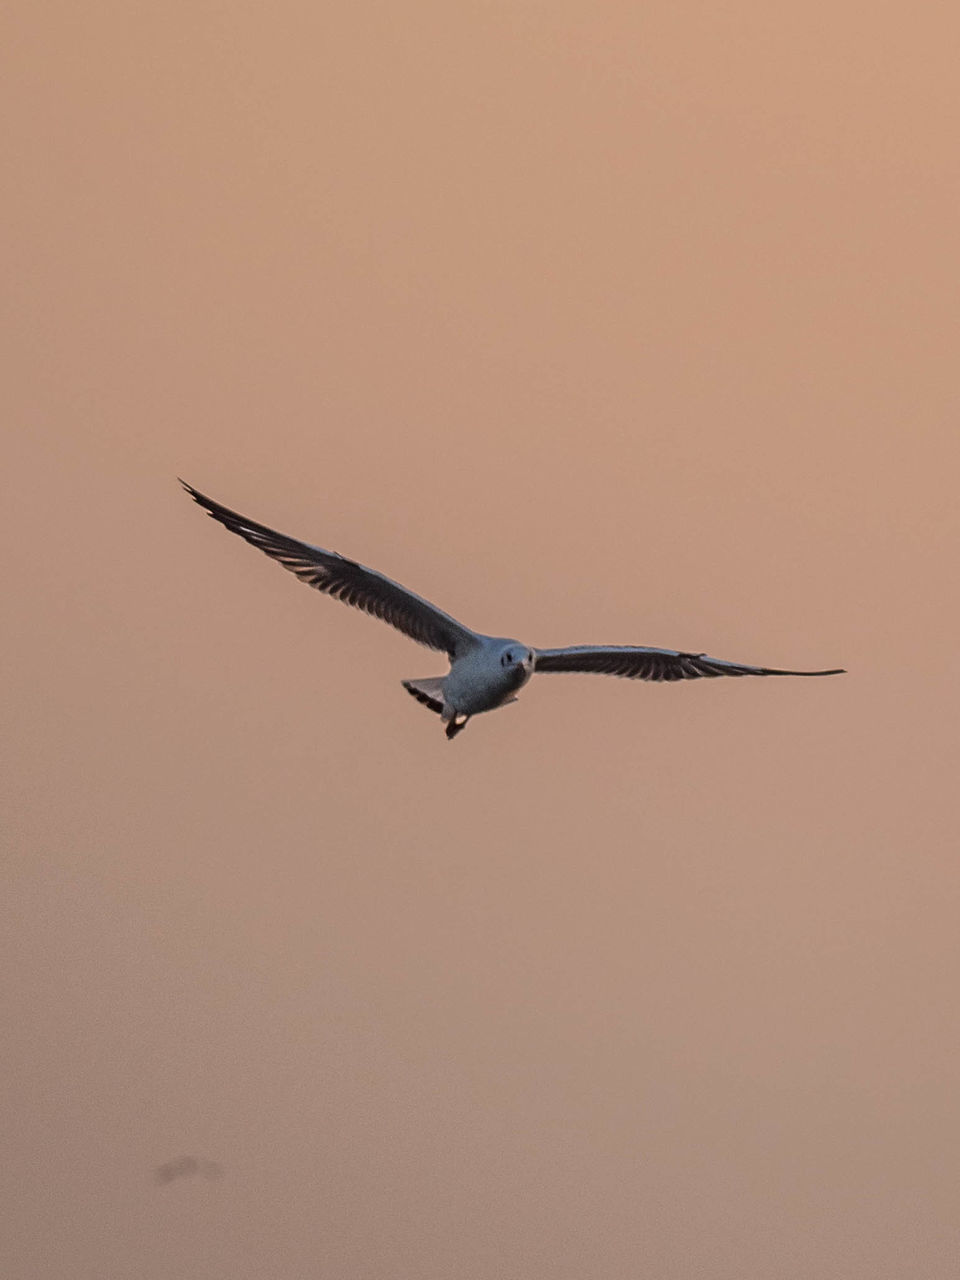 flying, mid-air, one animal, bird, animals in the wild, animal themes, spread wings, sunset, no people, clear sky, day, nature, outdoors, sky